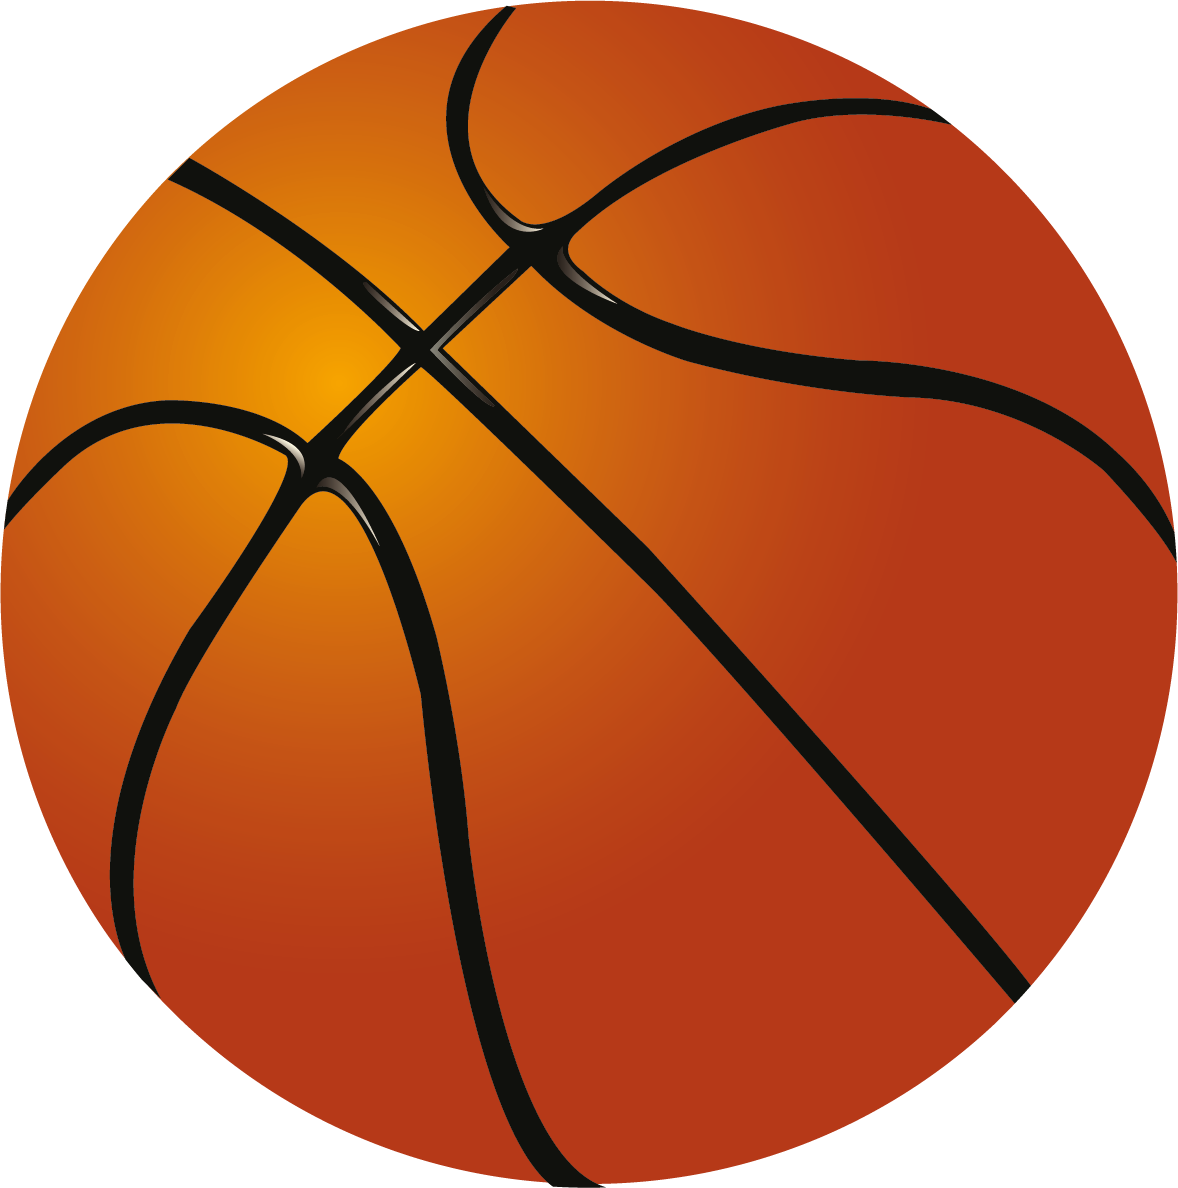 basketball clipart clipart panda free clipart images [ 1178 x 1188 Pixel ]